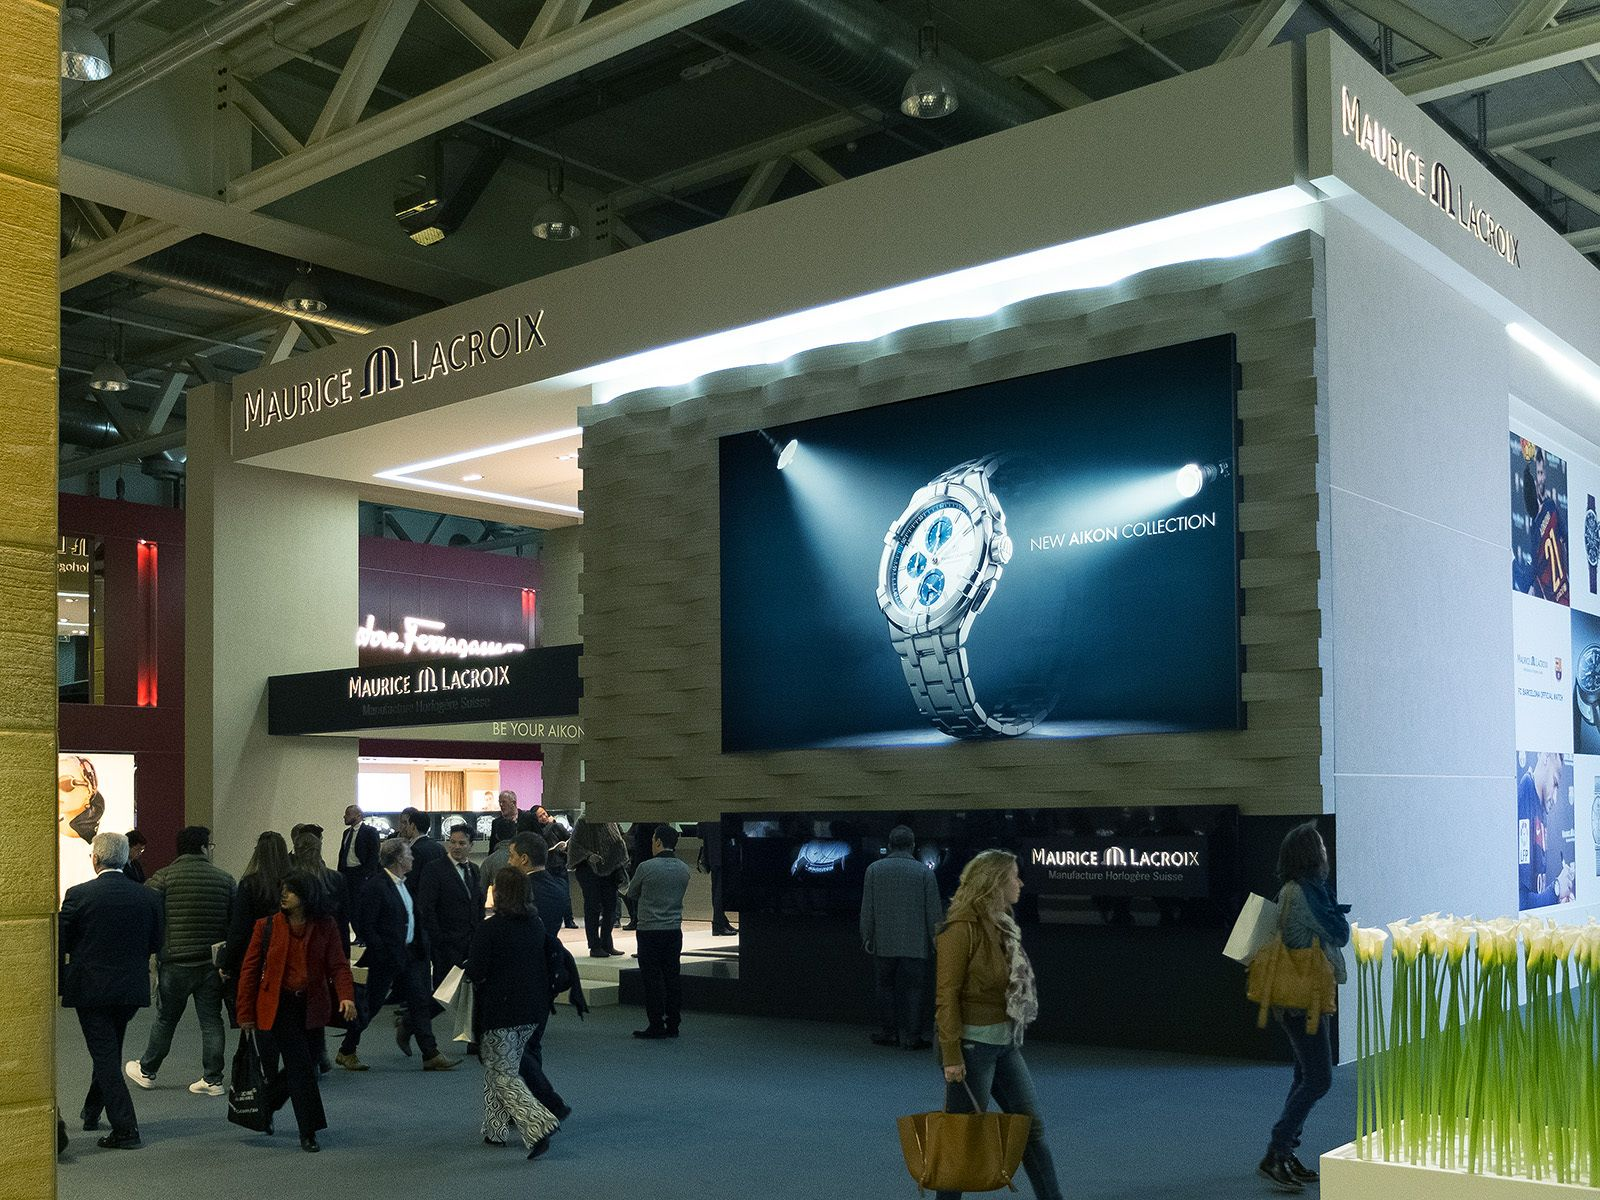 Maurice Lacroix's booth on Baselworld 2016 (Switzerland)